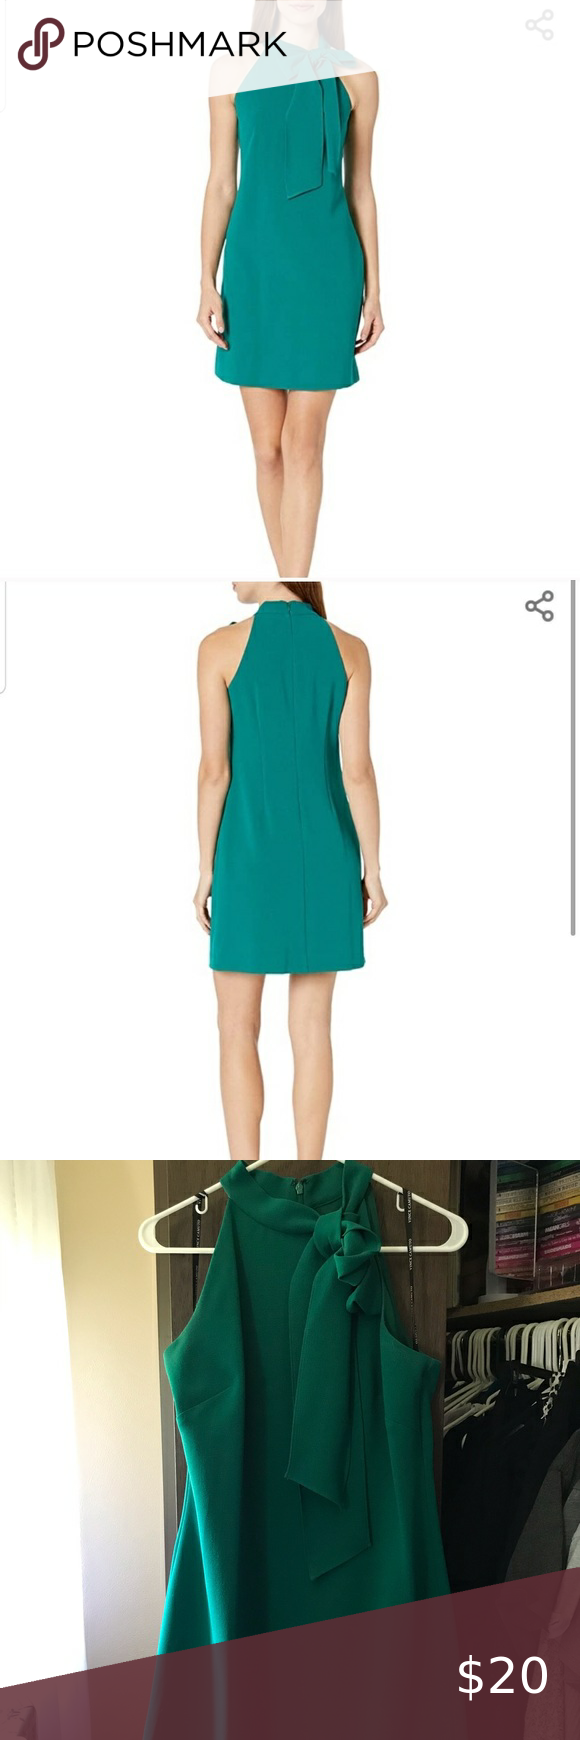 Vince Camuto Green Bow Dress Dress With Bow Dresses Wearing Dress [ 1740 x 580 Pixel ]